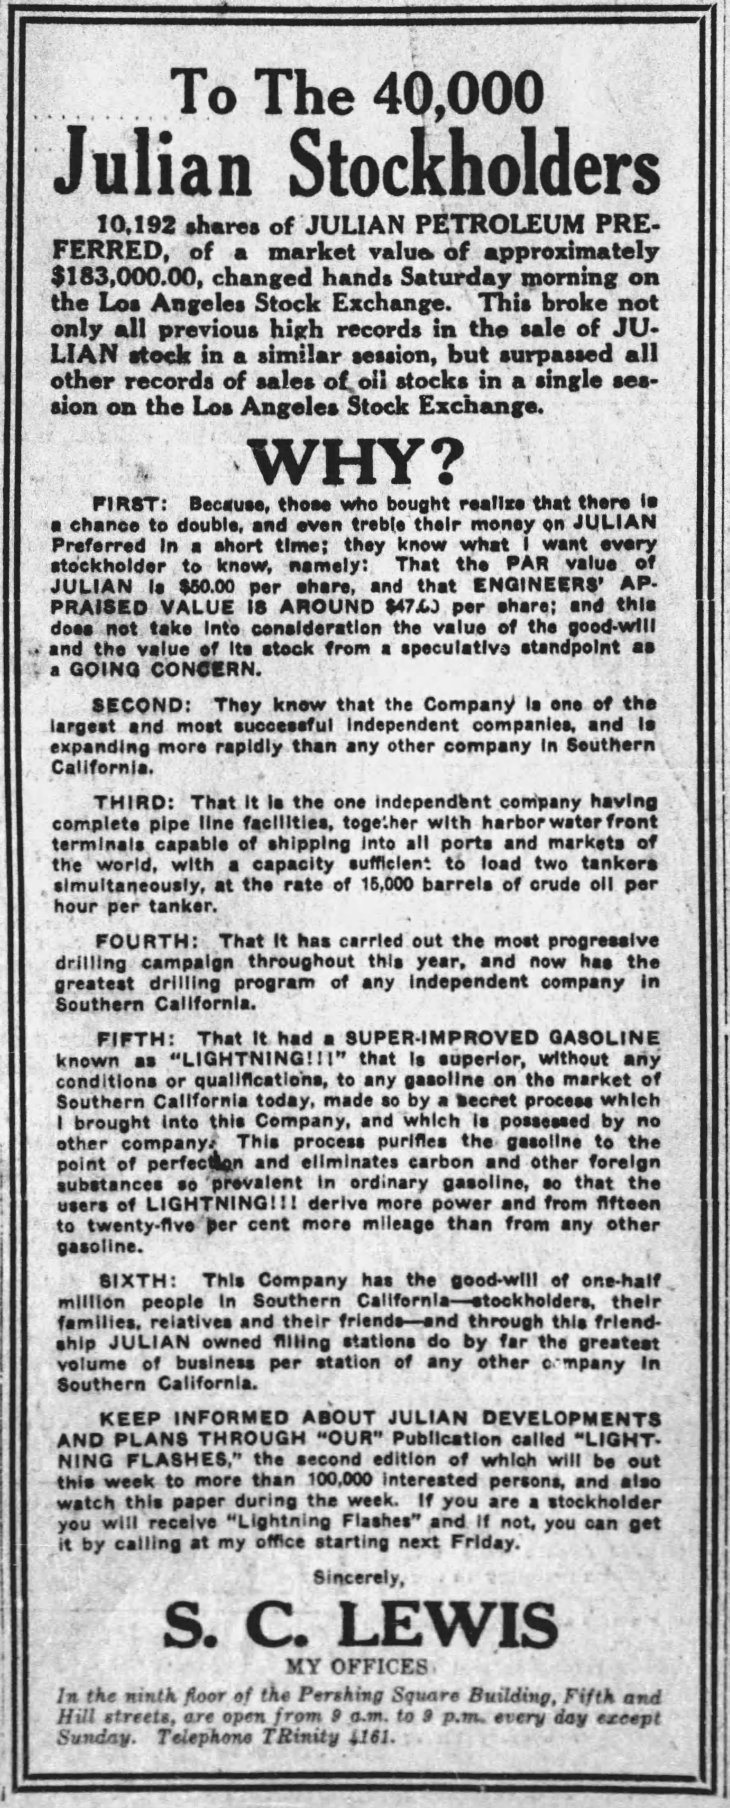 Lewis ad to Julian stockholders The_Los_Angeles_Times_Sun__Nov_22__1925_ (1)